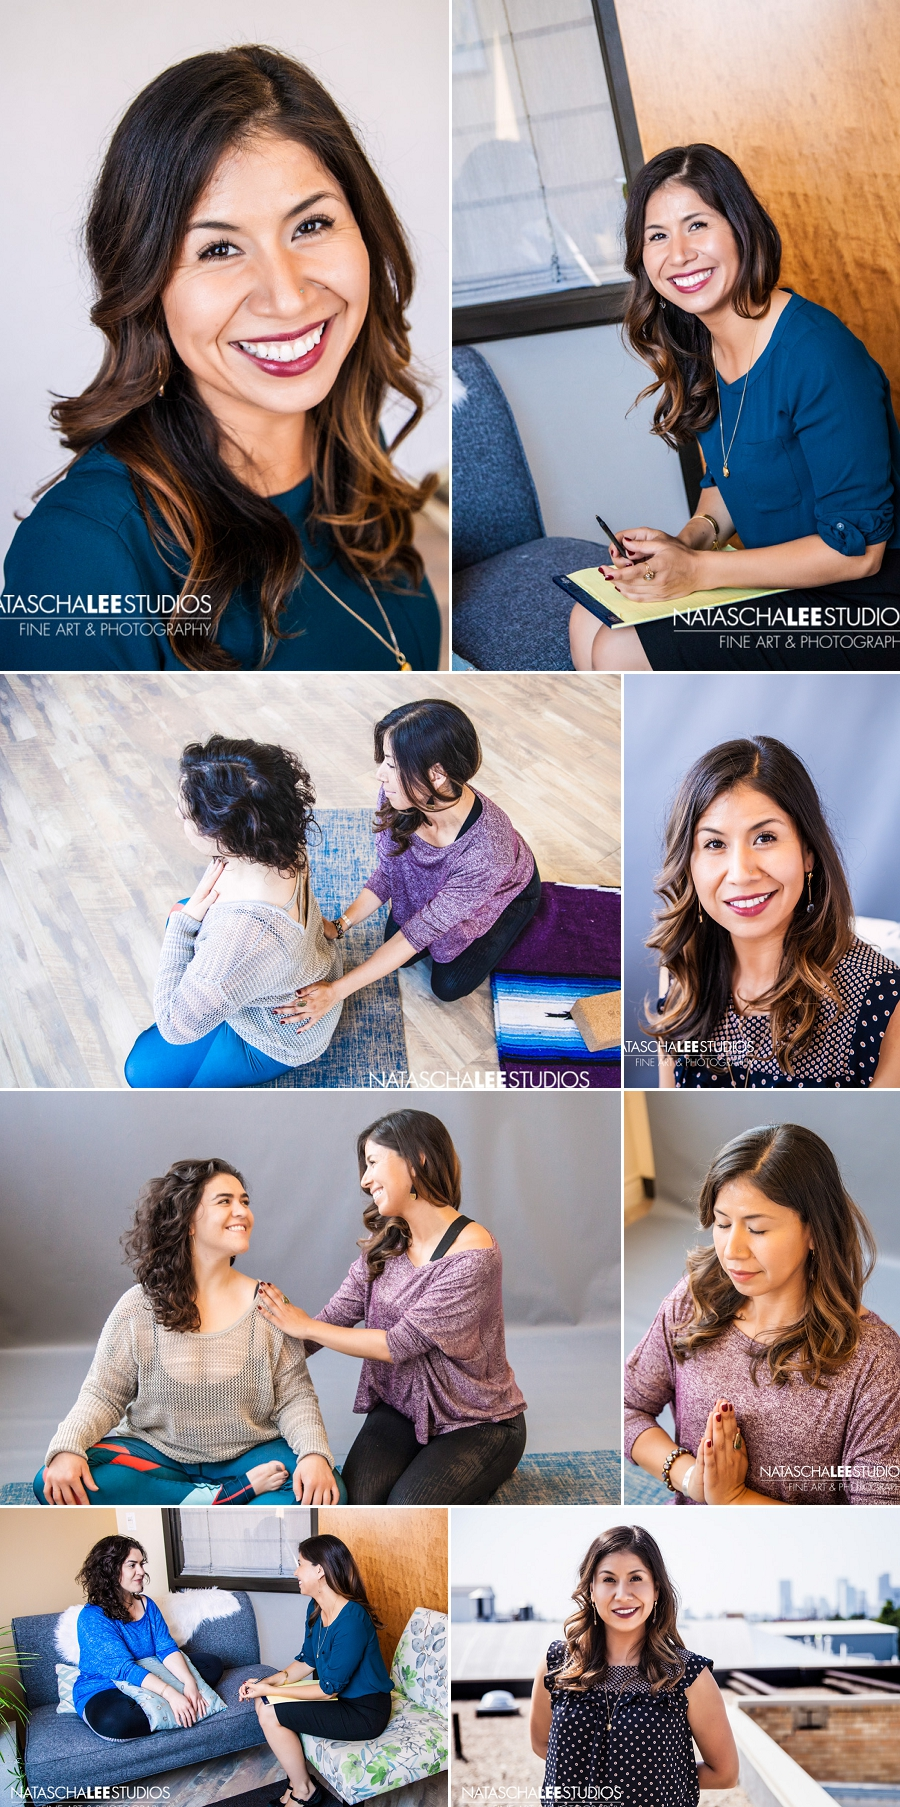 Denver Headshots with Personality - JV - by Natascha Lee Studios